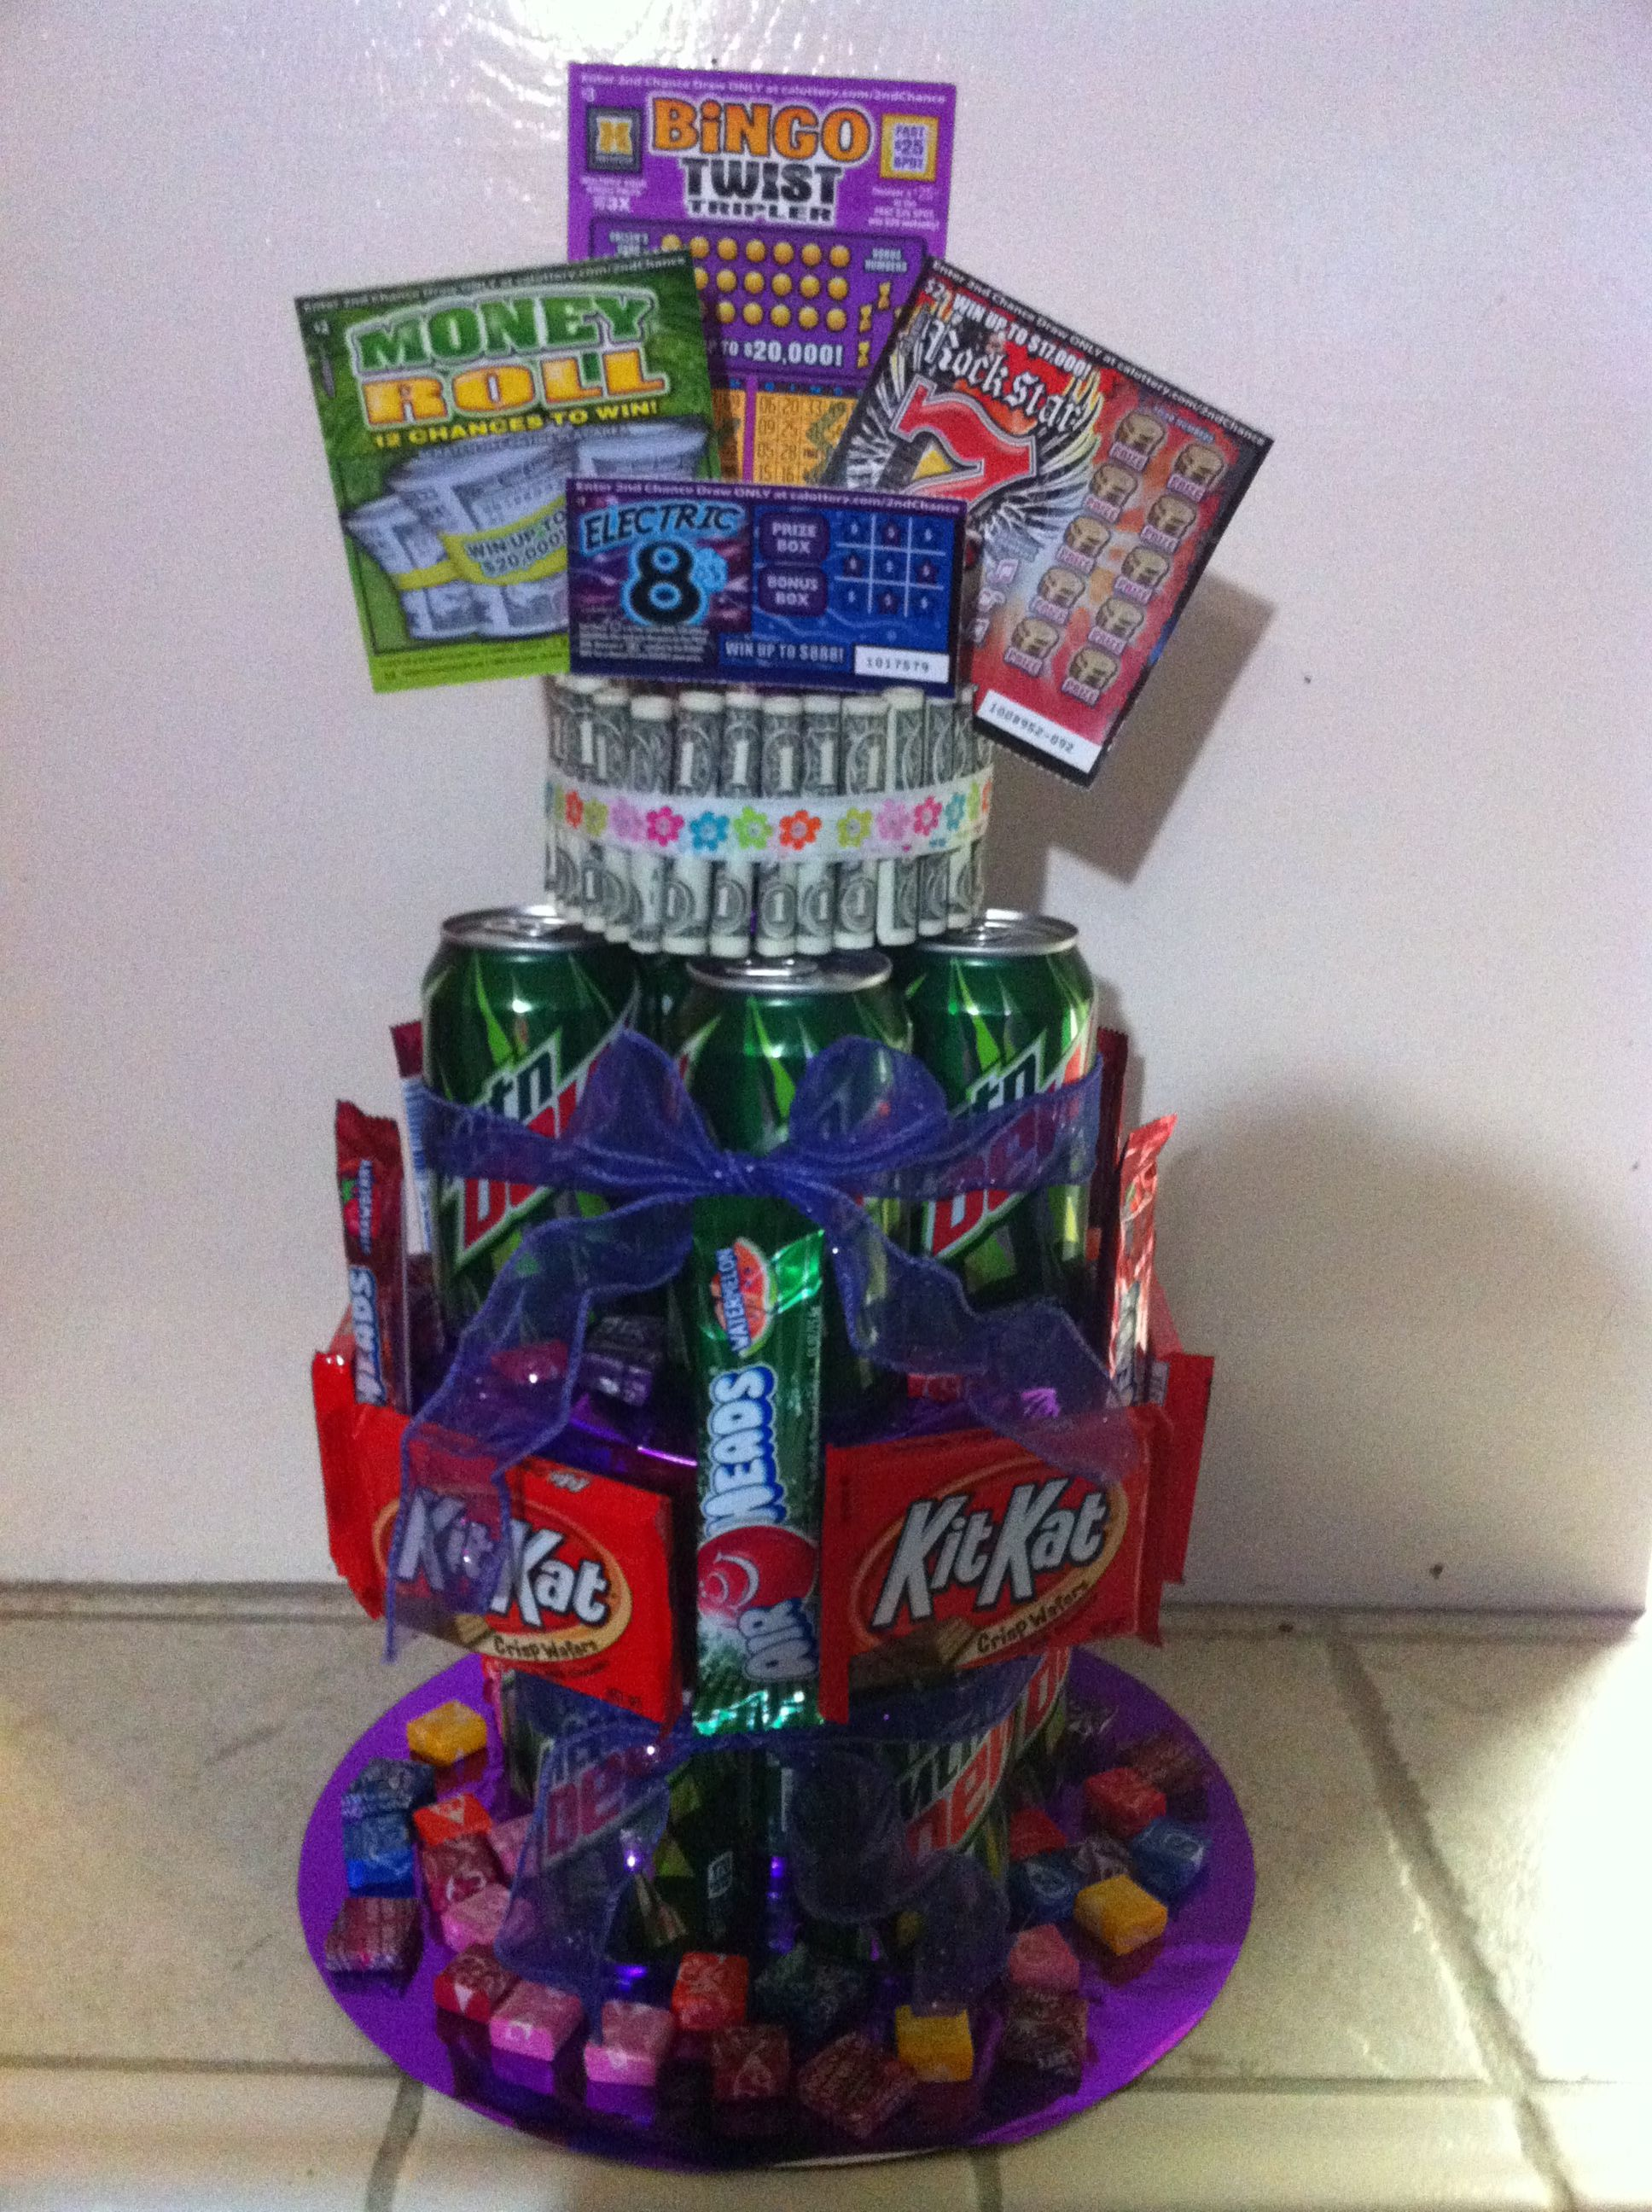 I Had Fun Creating My Niece 18th Birthday Gift In The Shape Of A 3 Tier Cake Made It With All Her Favorite Treats Soda Drink